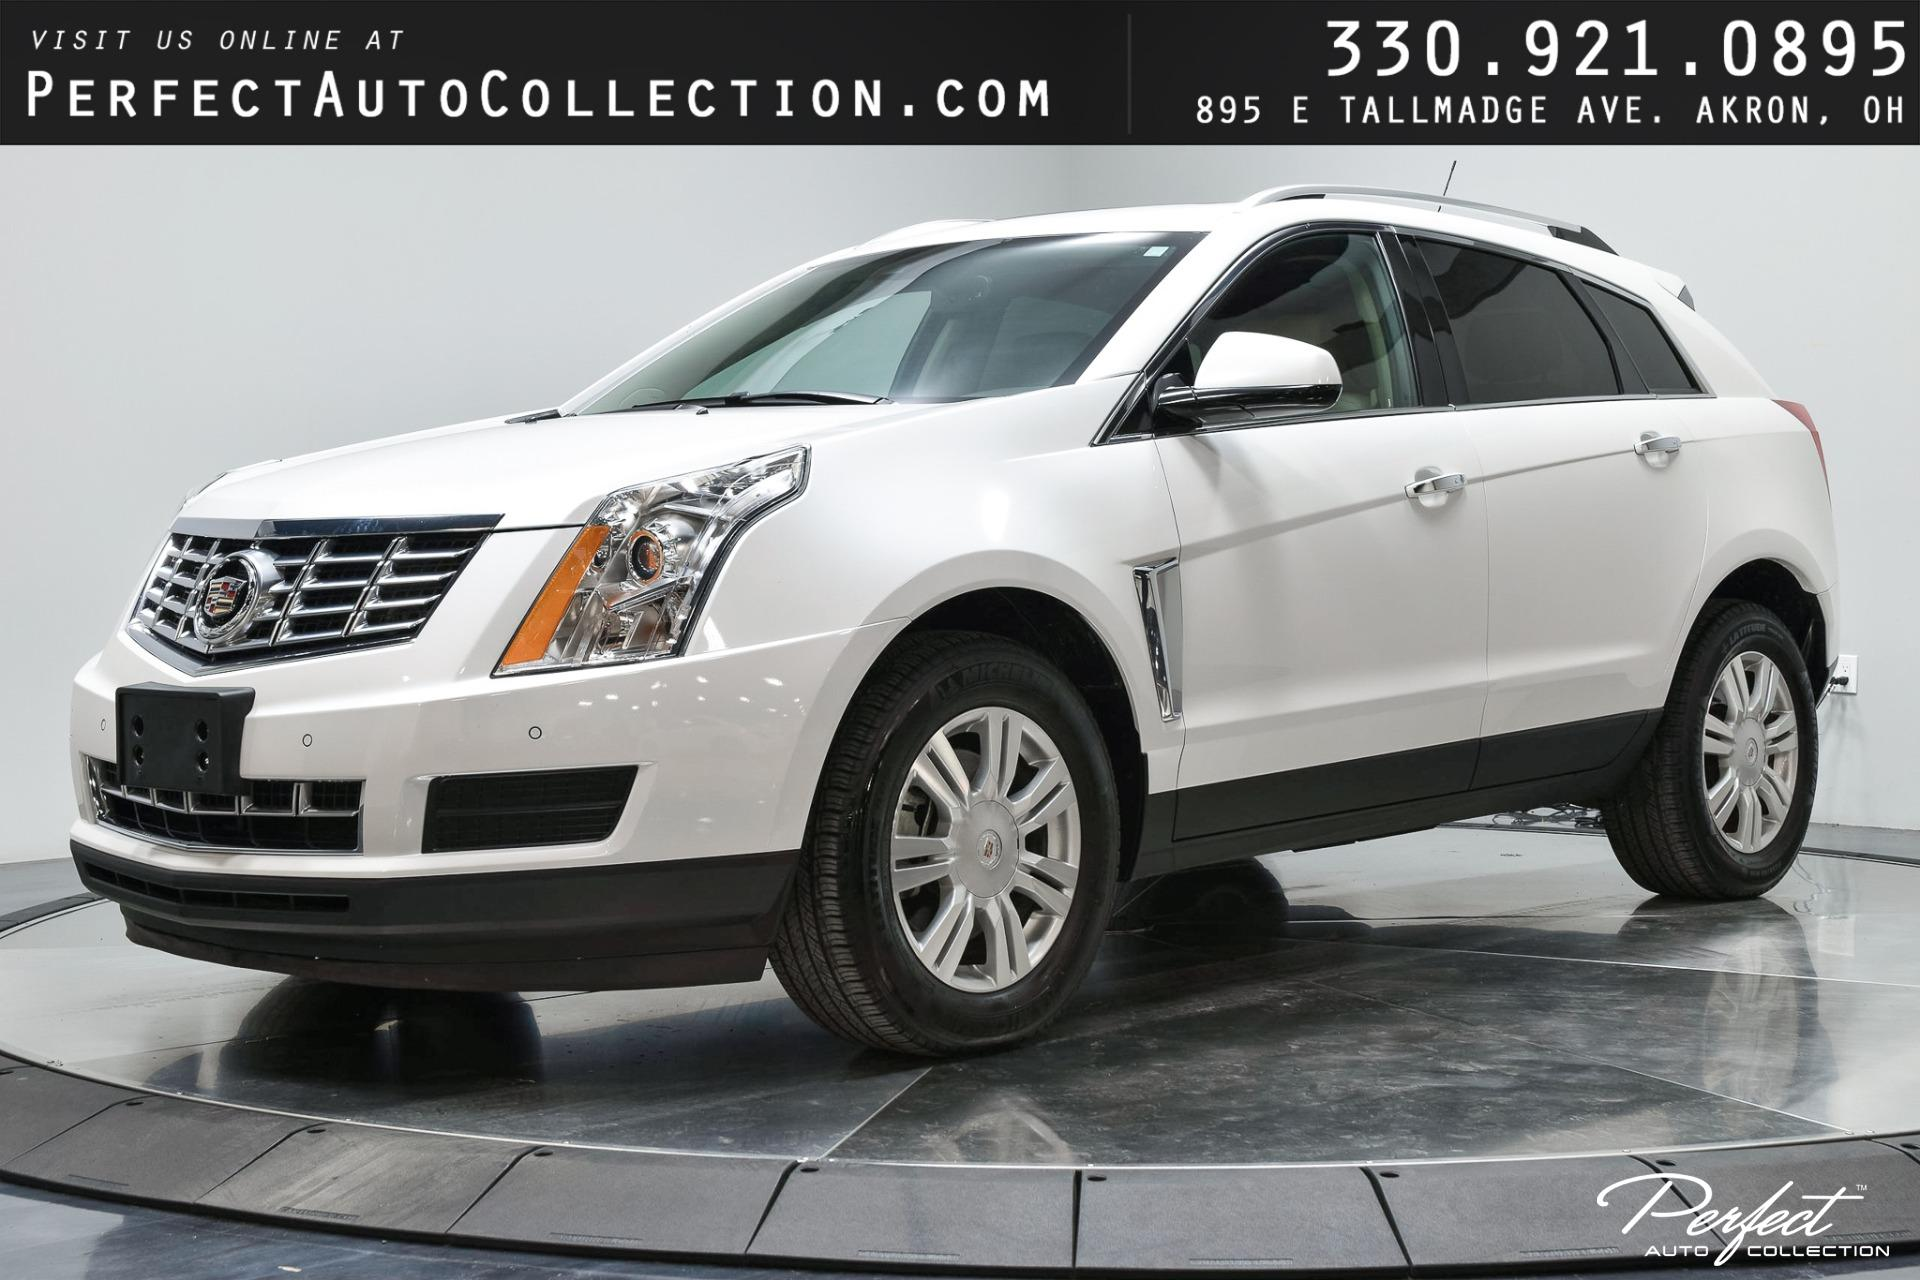 Used 2015 Cadillac SRX Luxury Collection for sale Sold at Perfect Auto Collection in Akron OH 44310 1